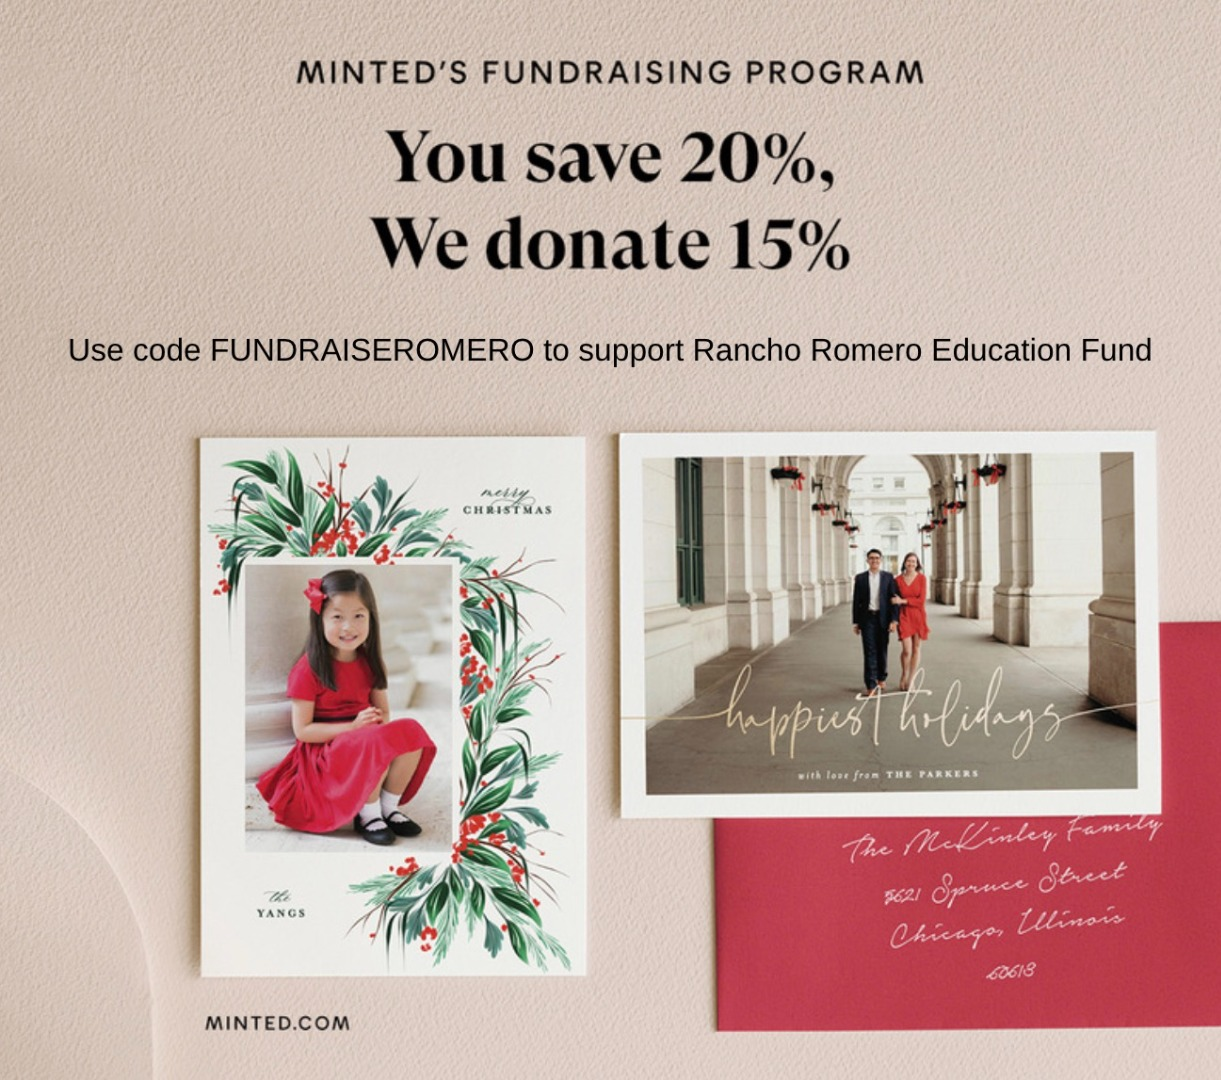 Minted Fundraising